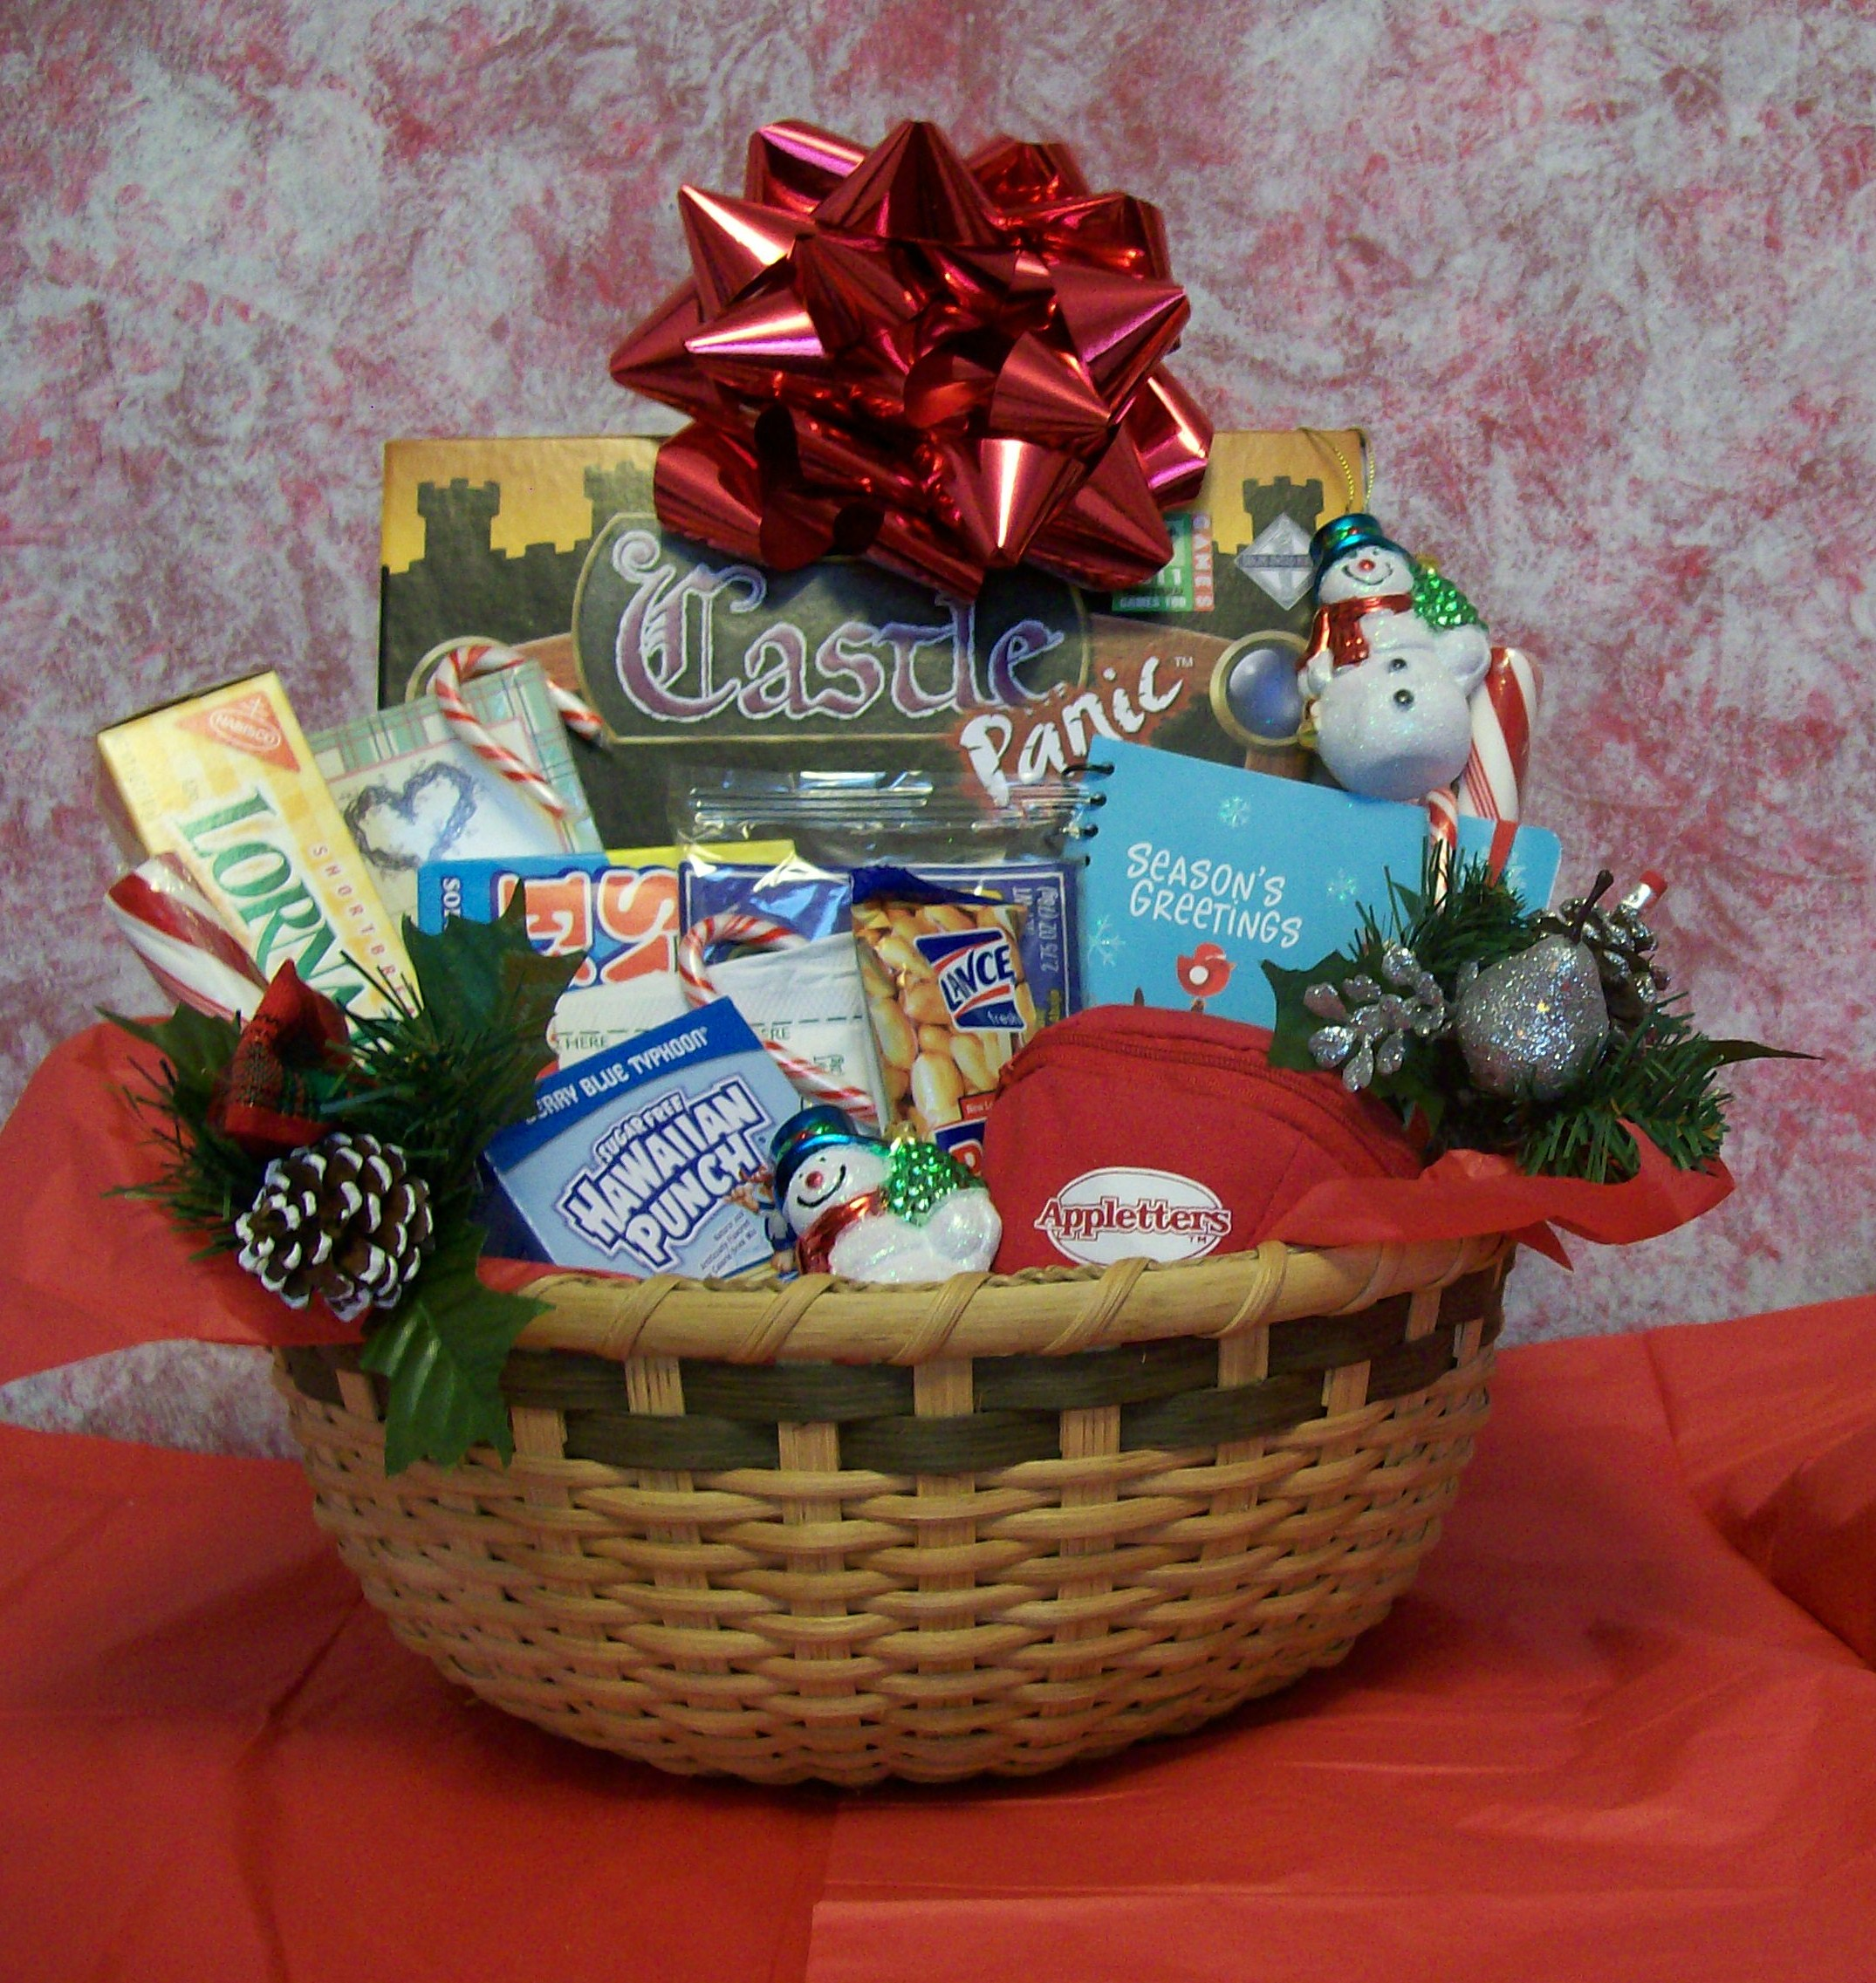 castle panic games gift basket for christmas - Cheap Christmas Gifts For Family